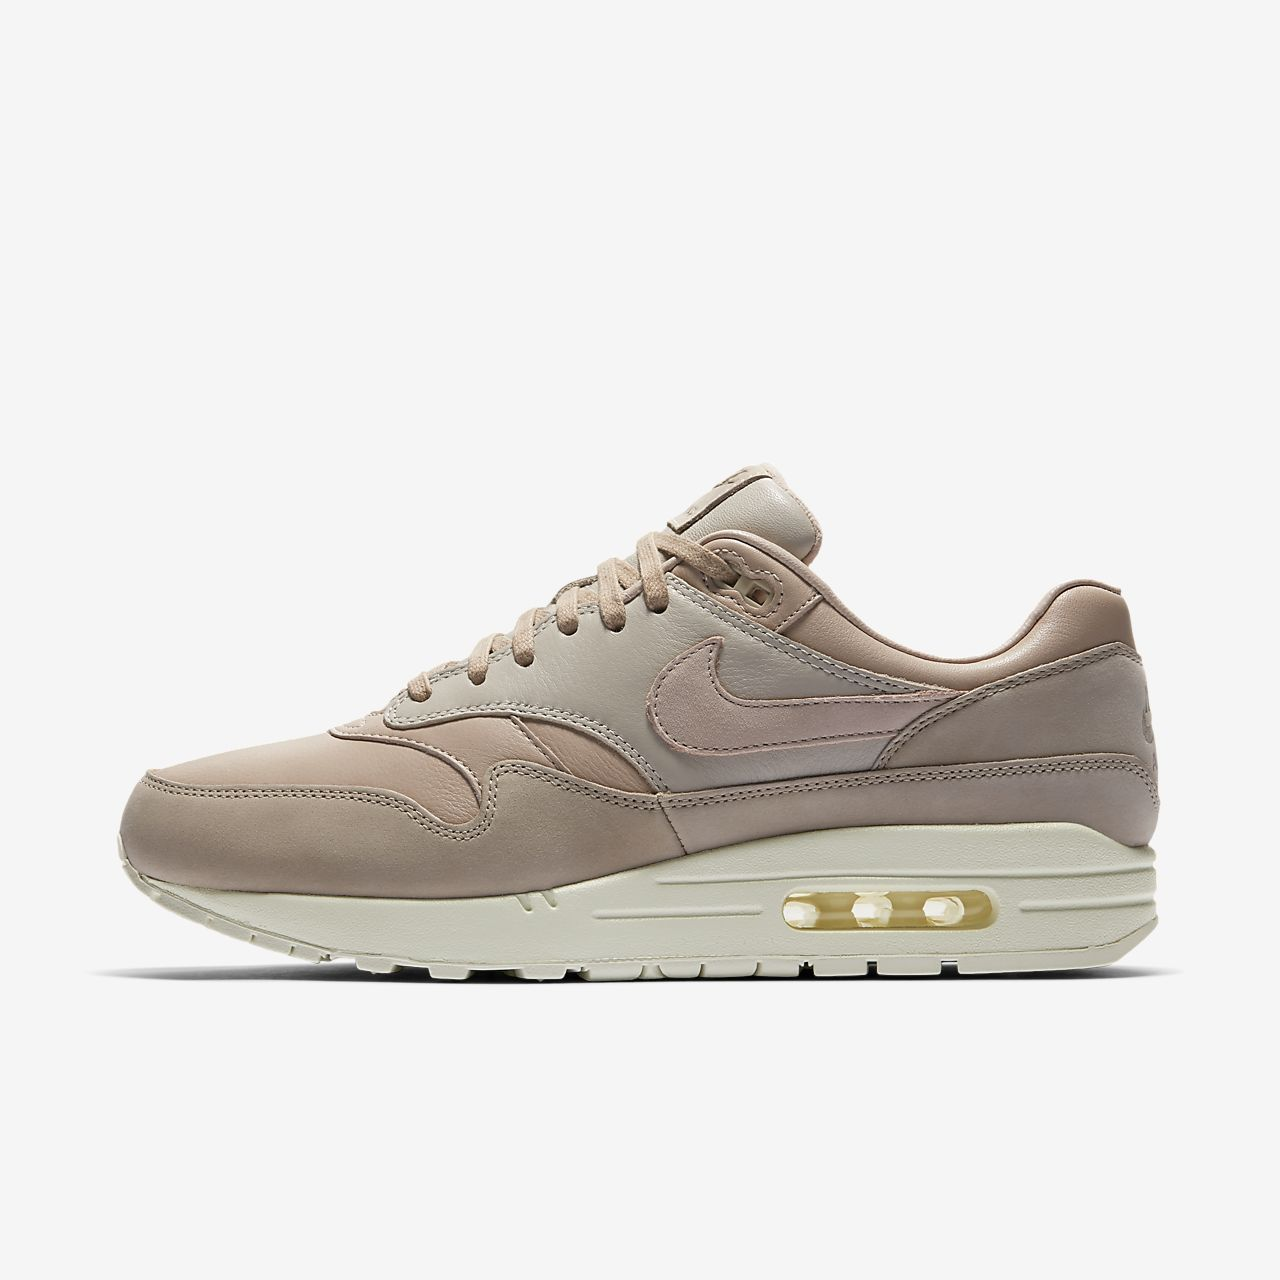 cheap for discount 5bd07 bb20a Low Resolution Nike Air Max 1 Pinnacle Zapatillas - Hombre Nike Air Max 1  Pinnacle Zapatillas - Hombre